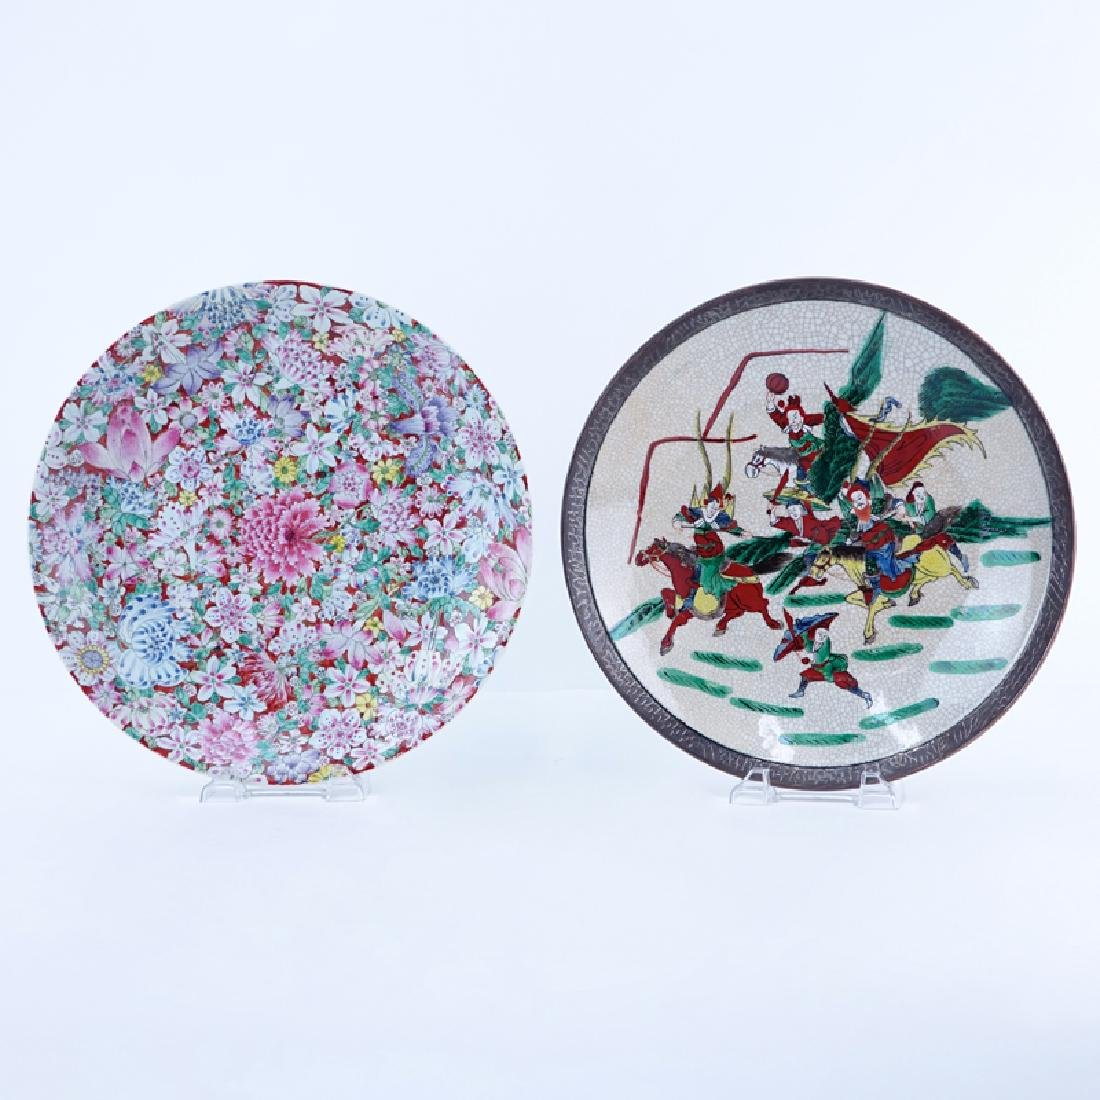 Chinese 1000 Flower Porcelain Charger and a Japanese